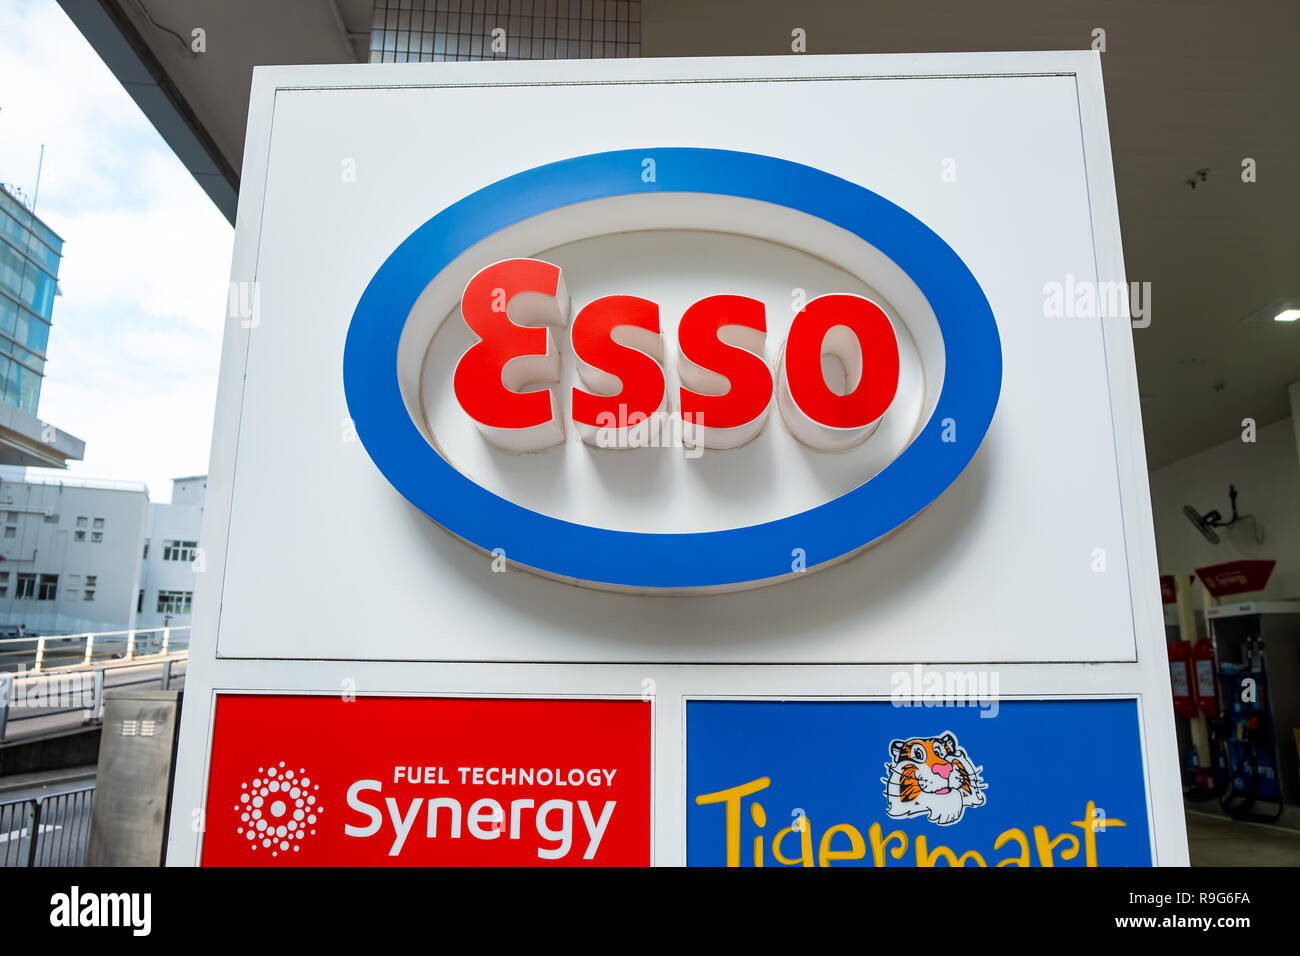 ESSO gasoline station. ESSO is a trading name for ExxonMobil and its related companies - Stock Image